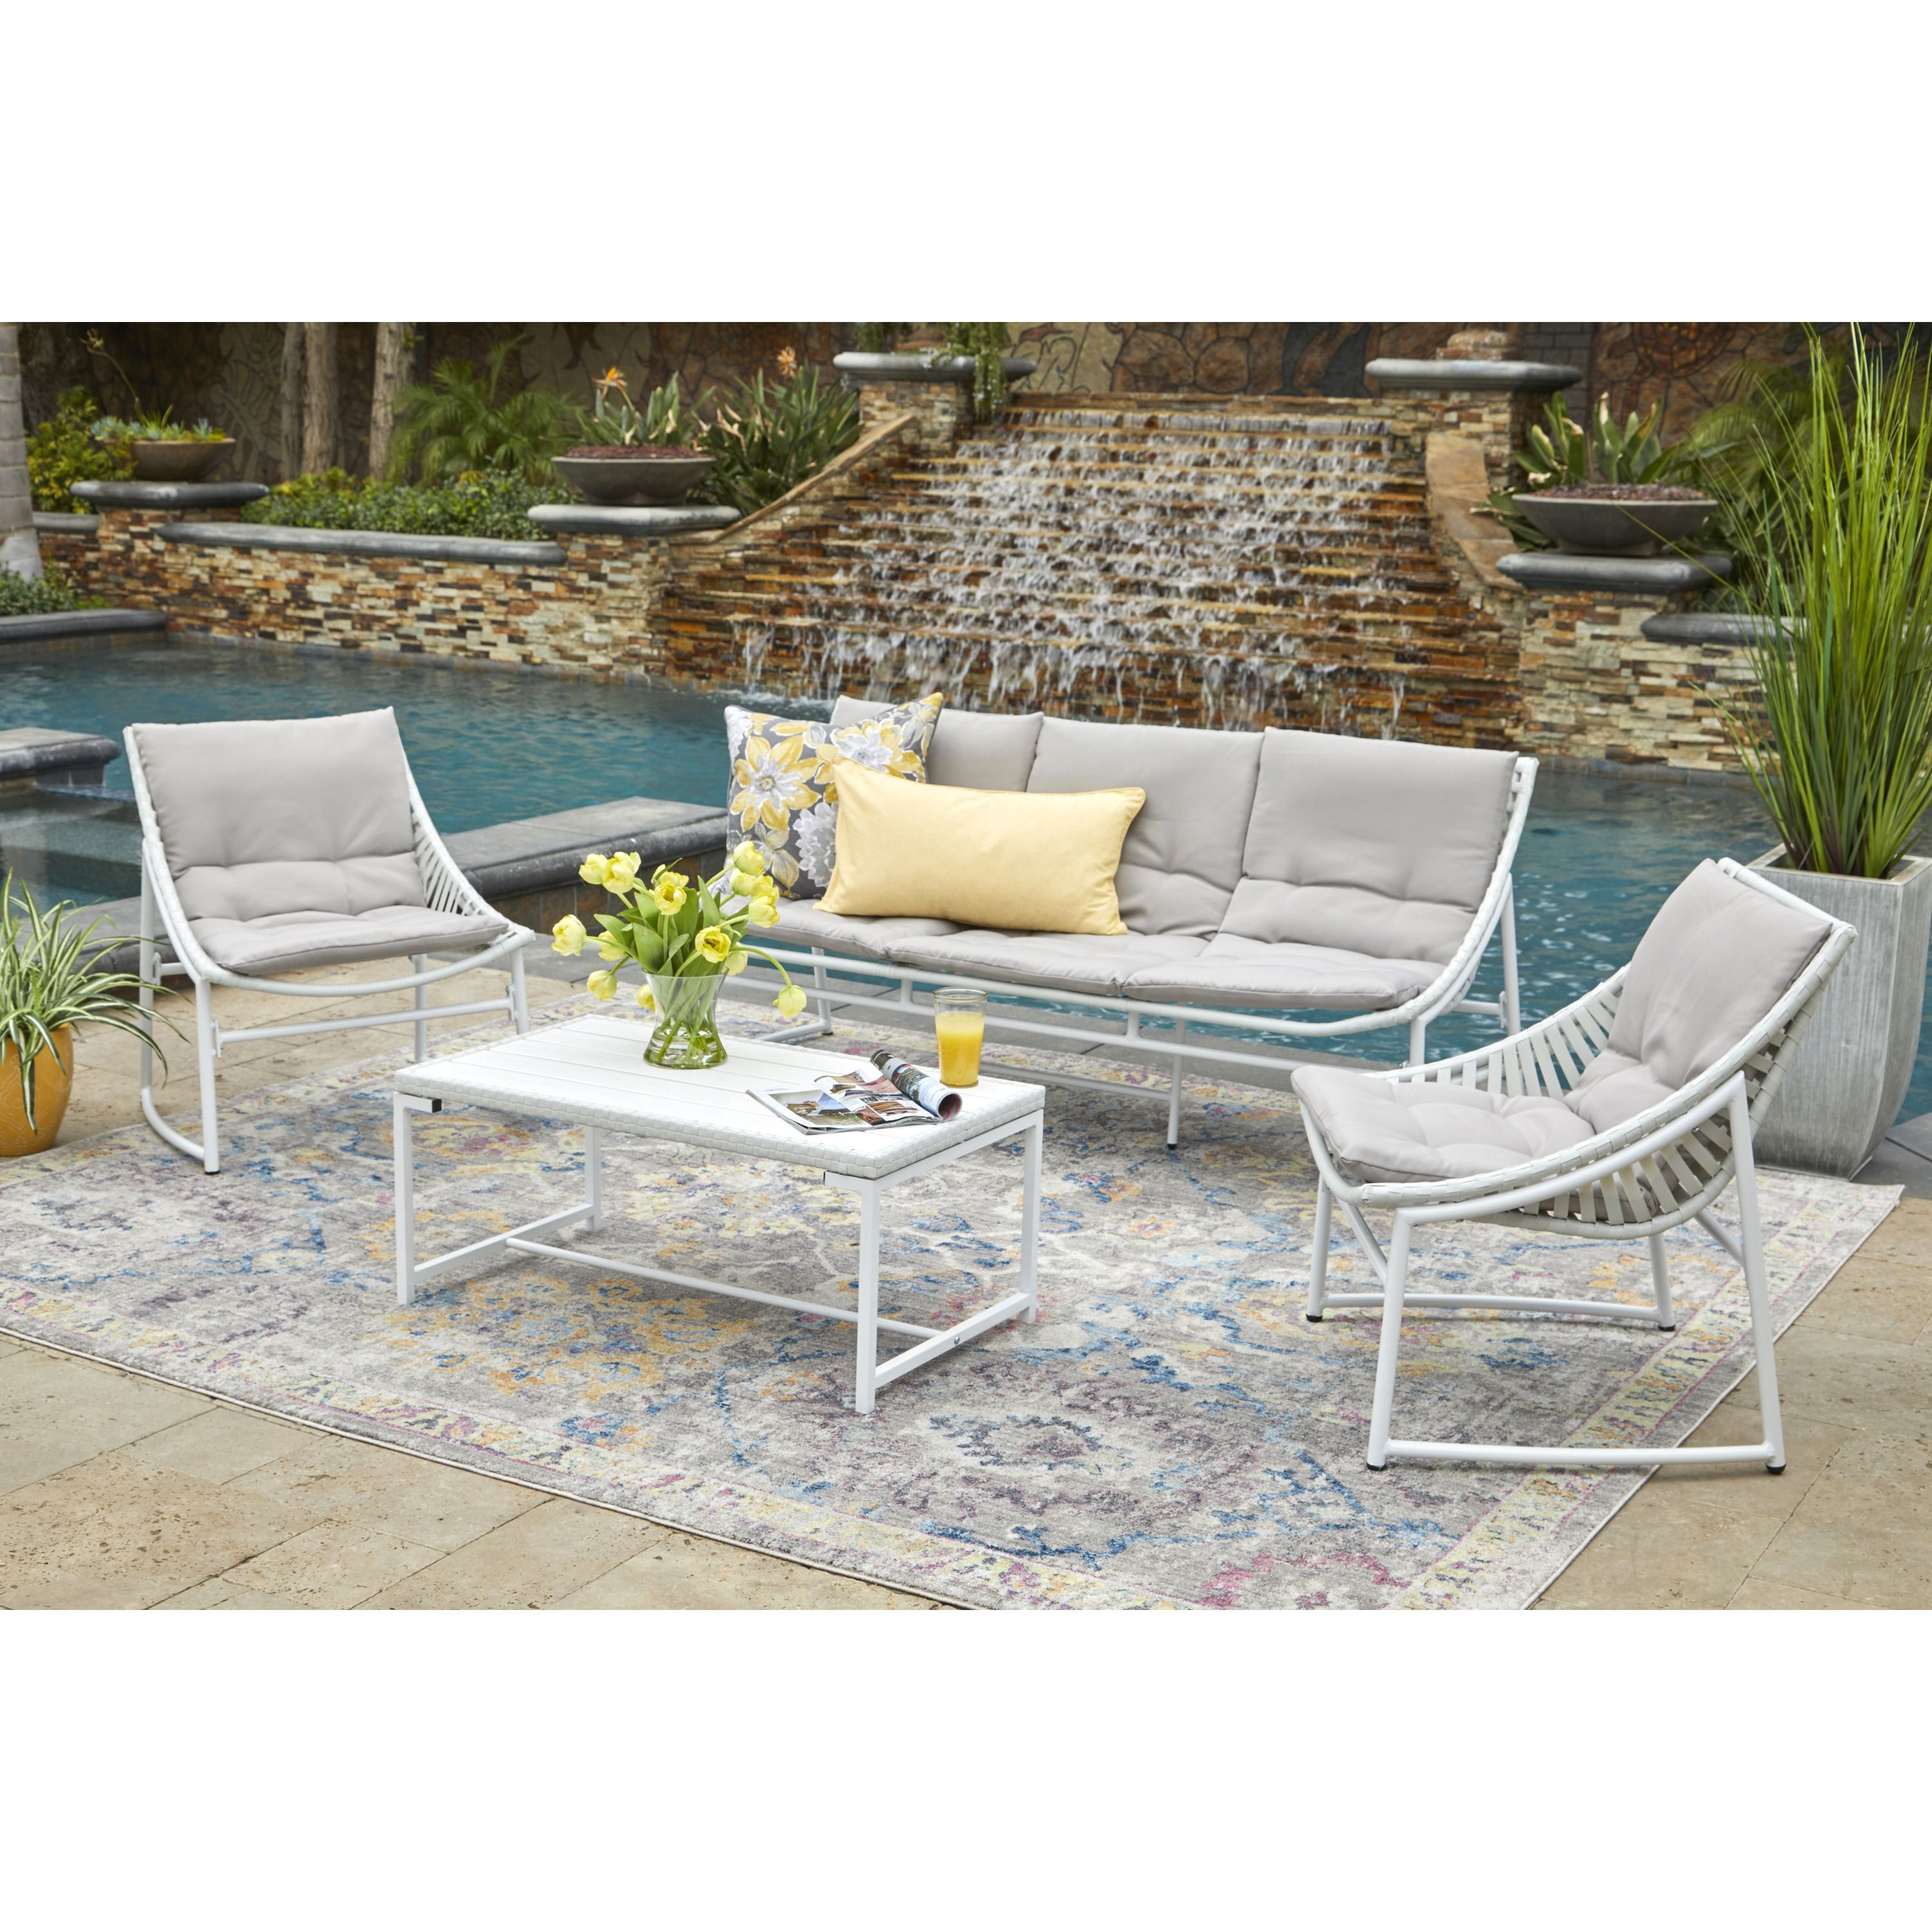 Havenside Home Plymouth 4 Piece Indoor Outdoor Sling Conversation Set With Grey Fabric Cushions White Patio Furniture Deals Havenside Home Patio Seating Sets